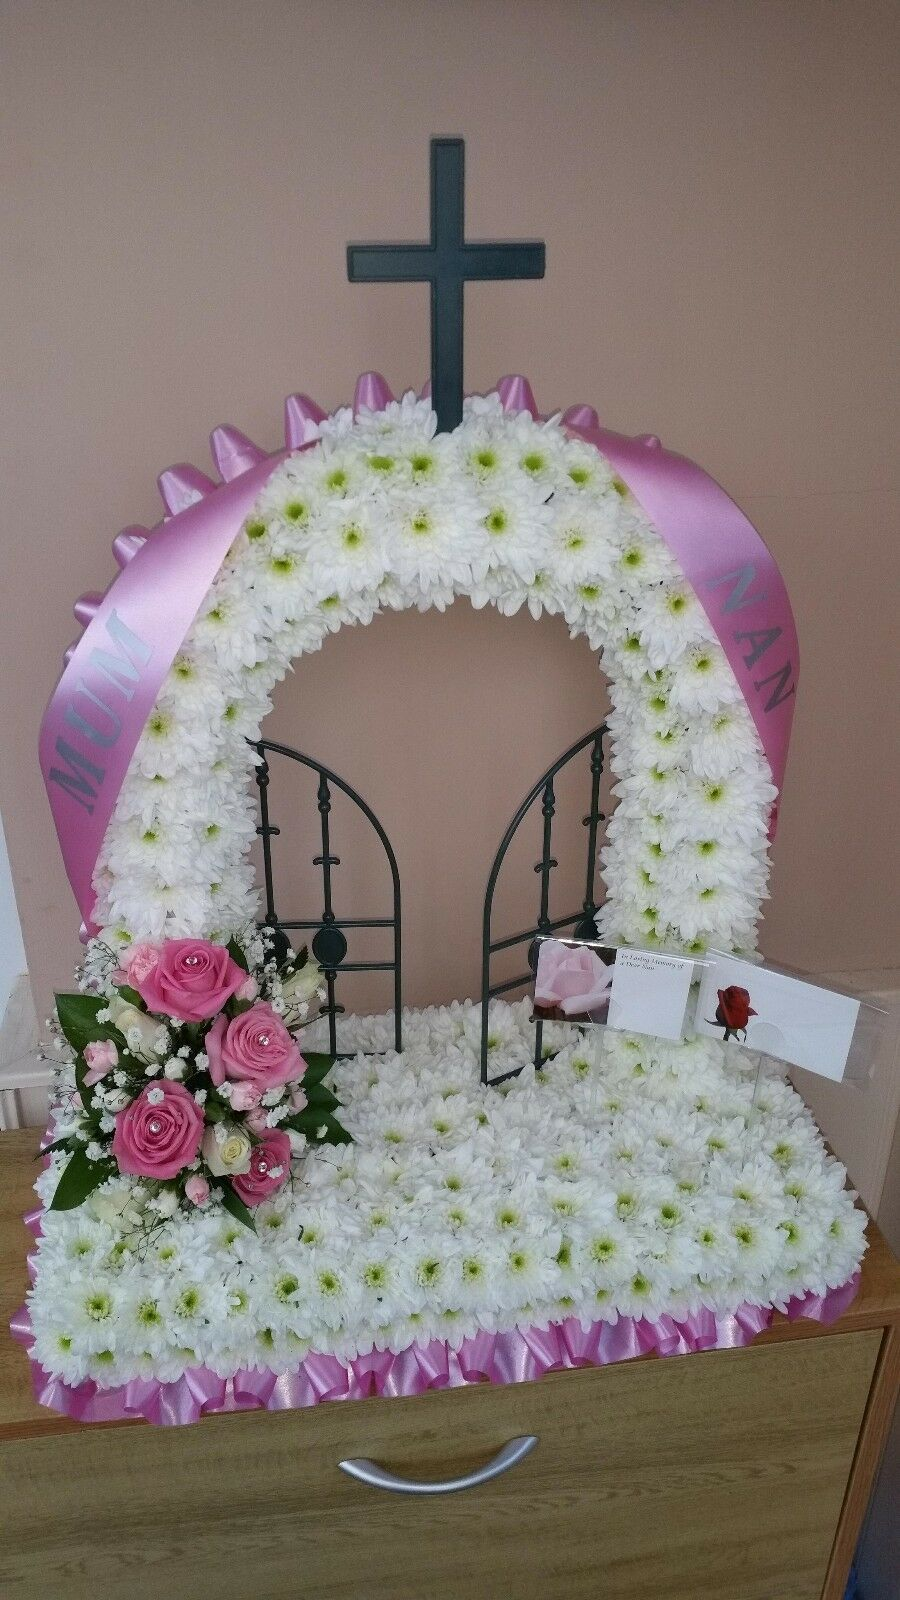 Funeral tribute gates of heaven fresh flowers 8000 picclick uk funeral tribute gates of heaven fresh flowers 1 of 1only 1 available izmirmasajfo